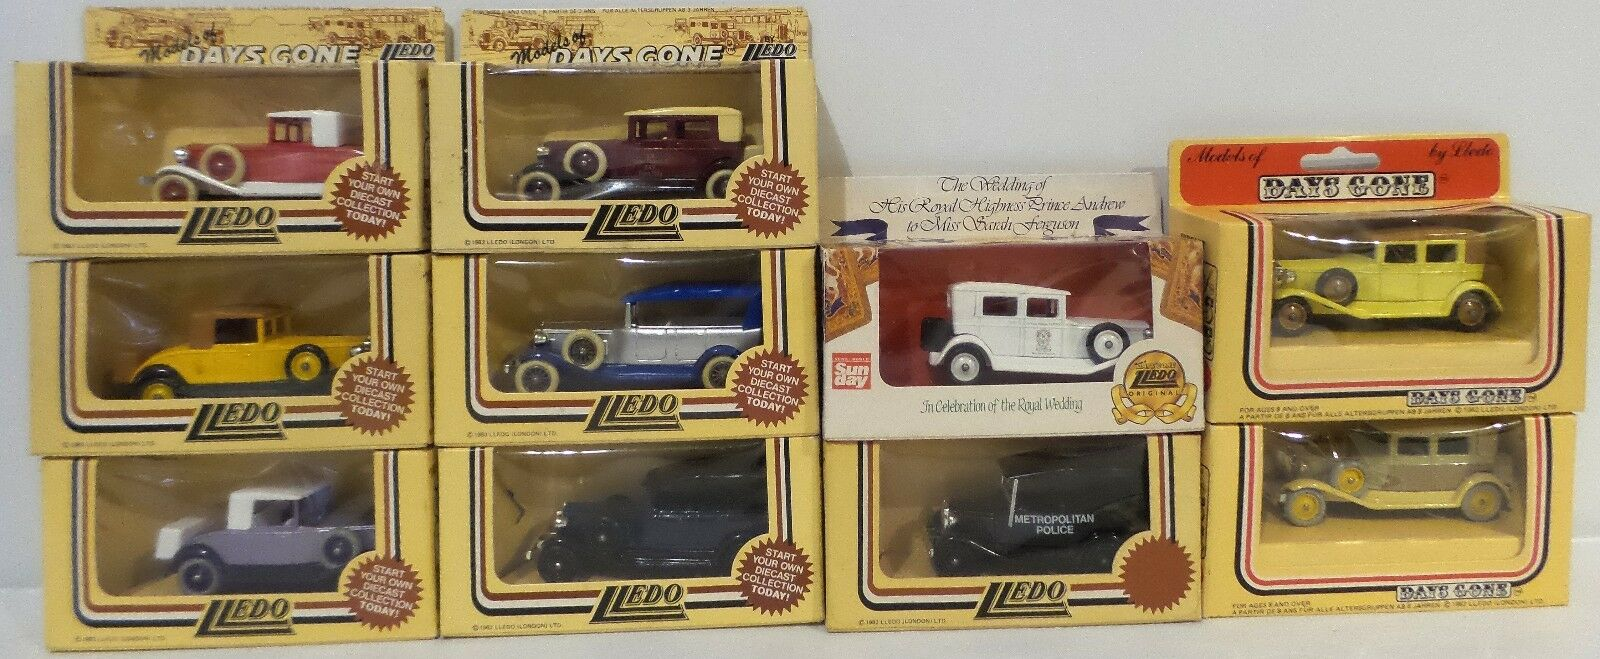 VEHICLES   DIE CAST SET OF 10 CARS MADE BY LLEDO (DT) 132